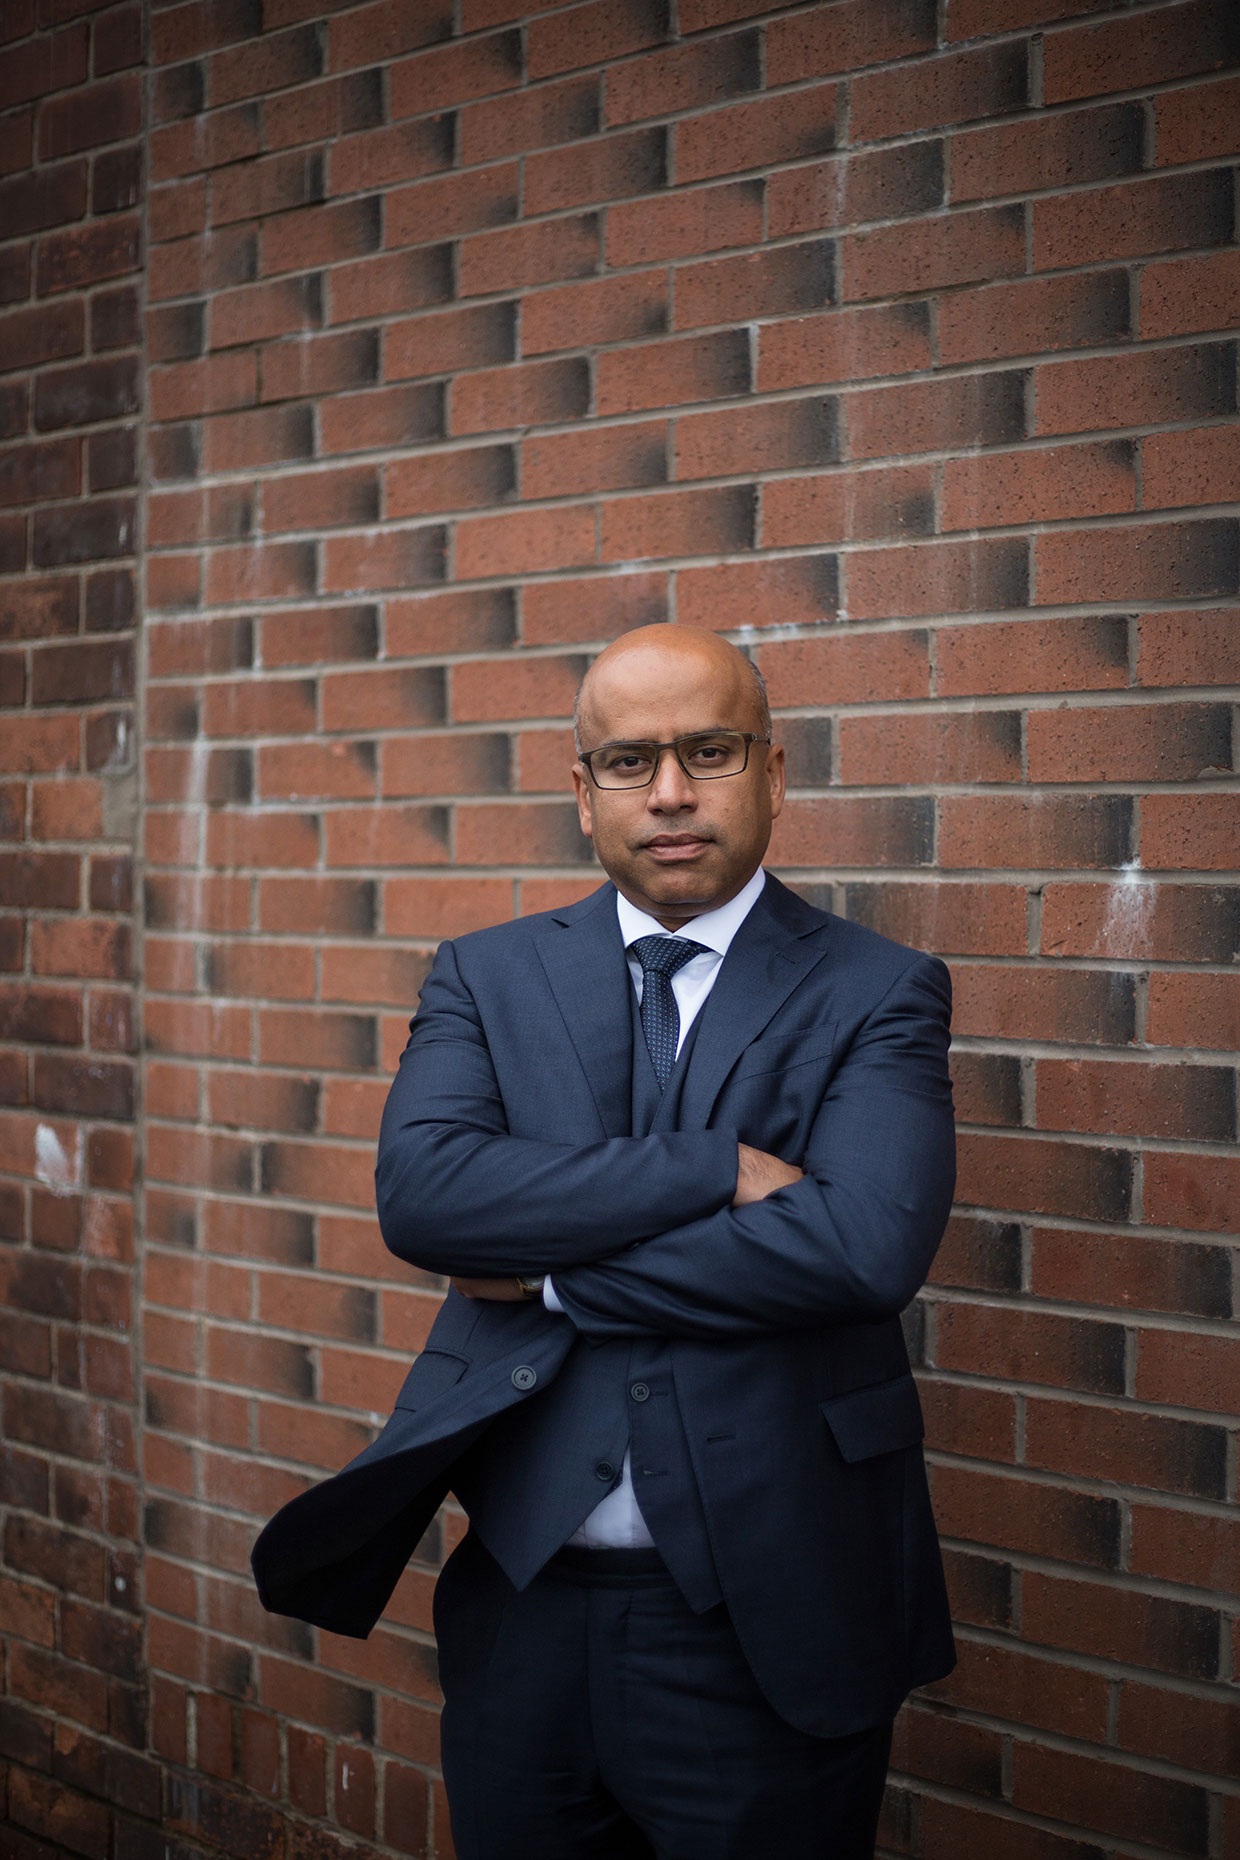 Sanjeev Gupta portrait by Scottish photographer Jeremy Sutton-Hibbert.